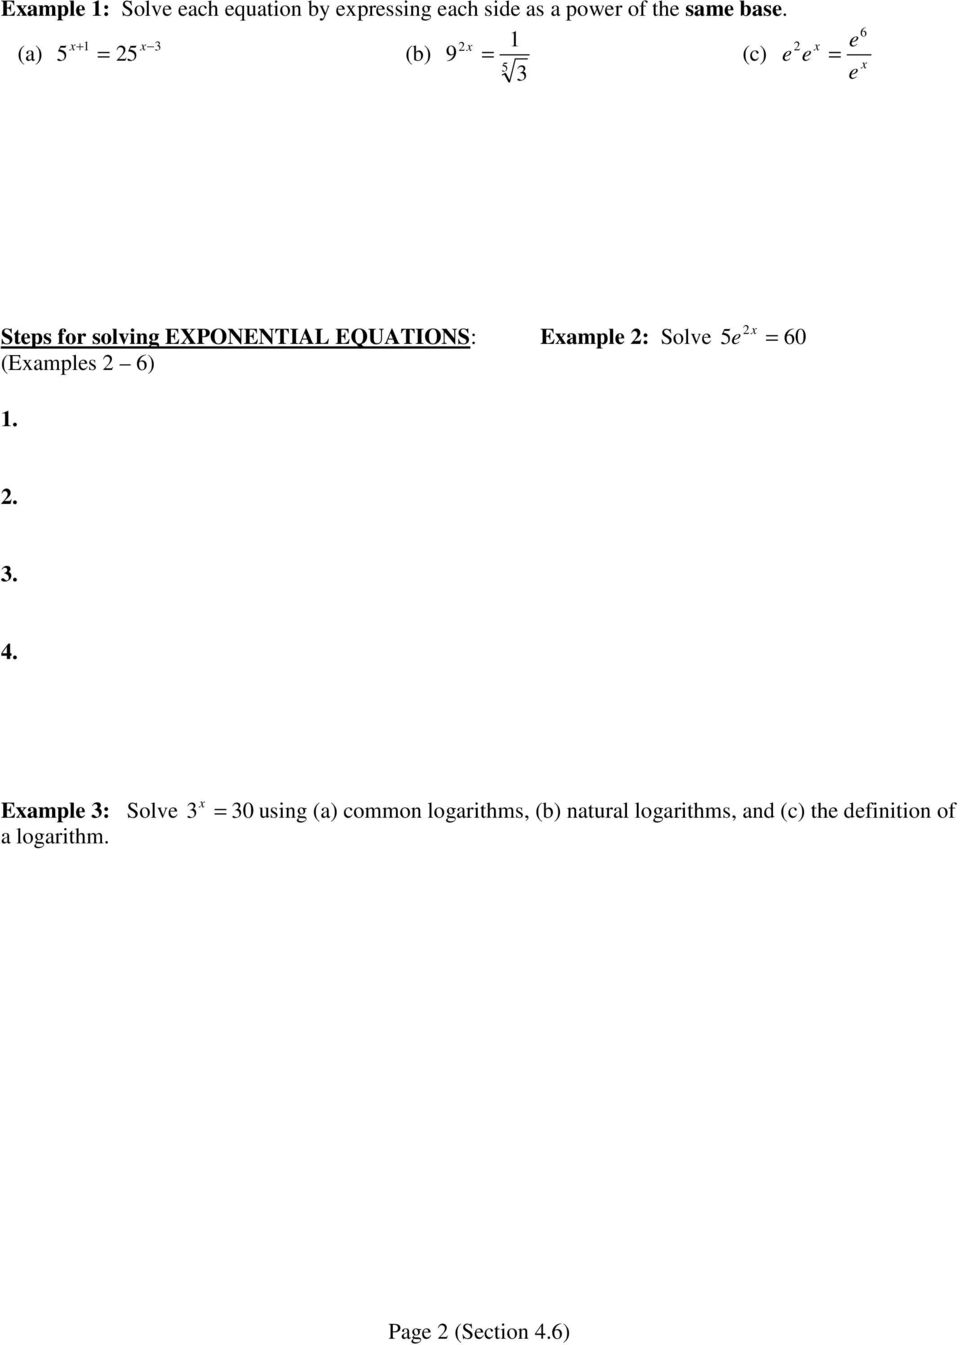 worksheet Solving Exponential Equations With Logarithms Worksheet 4 6 exponential and logarithmic equations part i pdf eample solve 5e 60 eamples 1 3 4